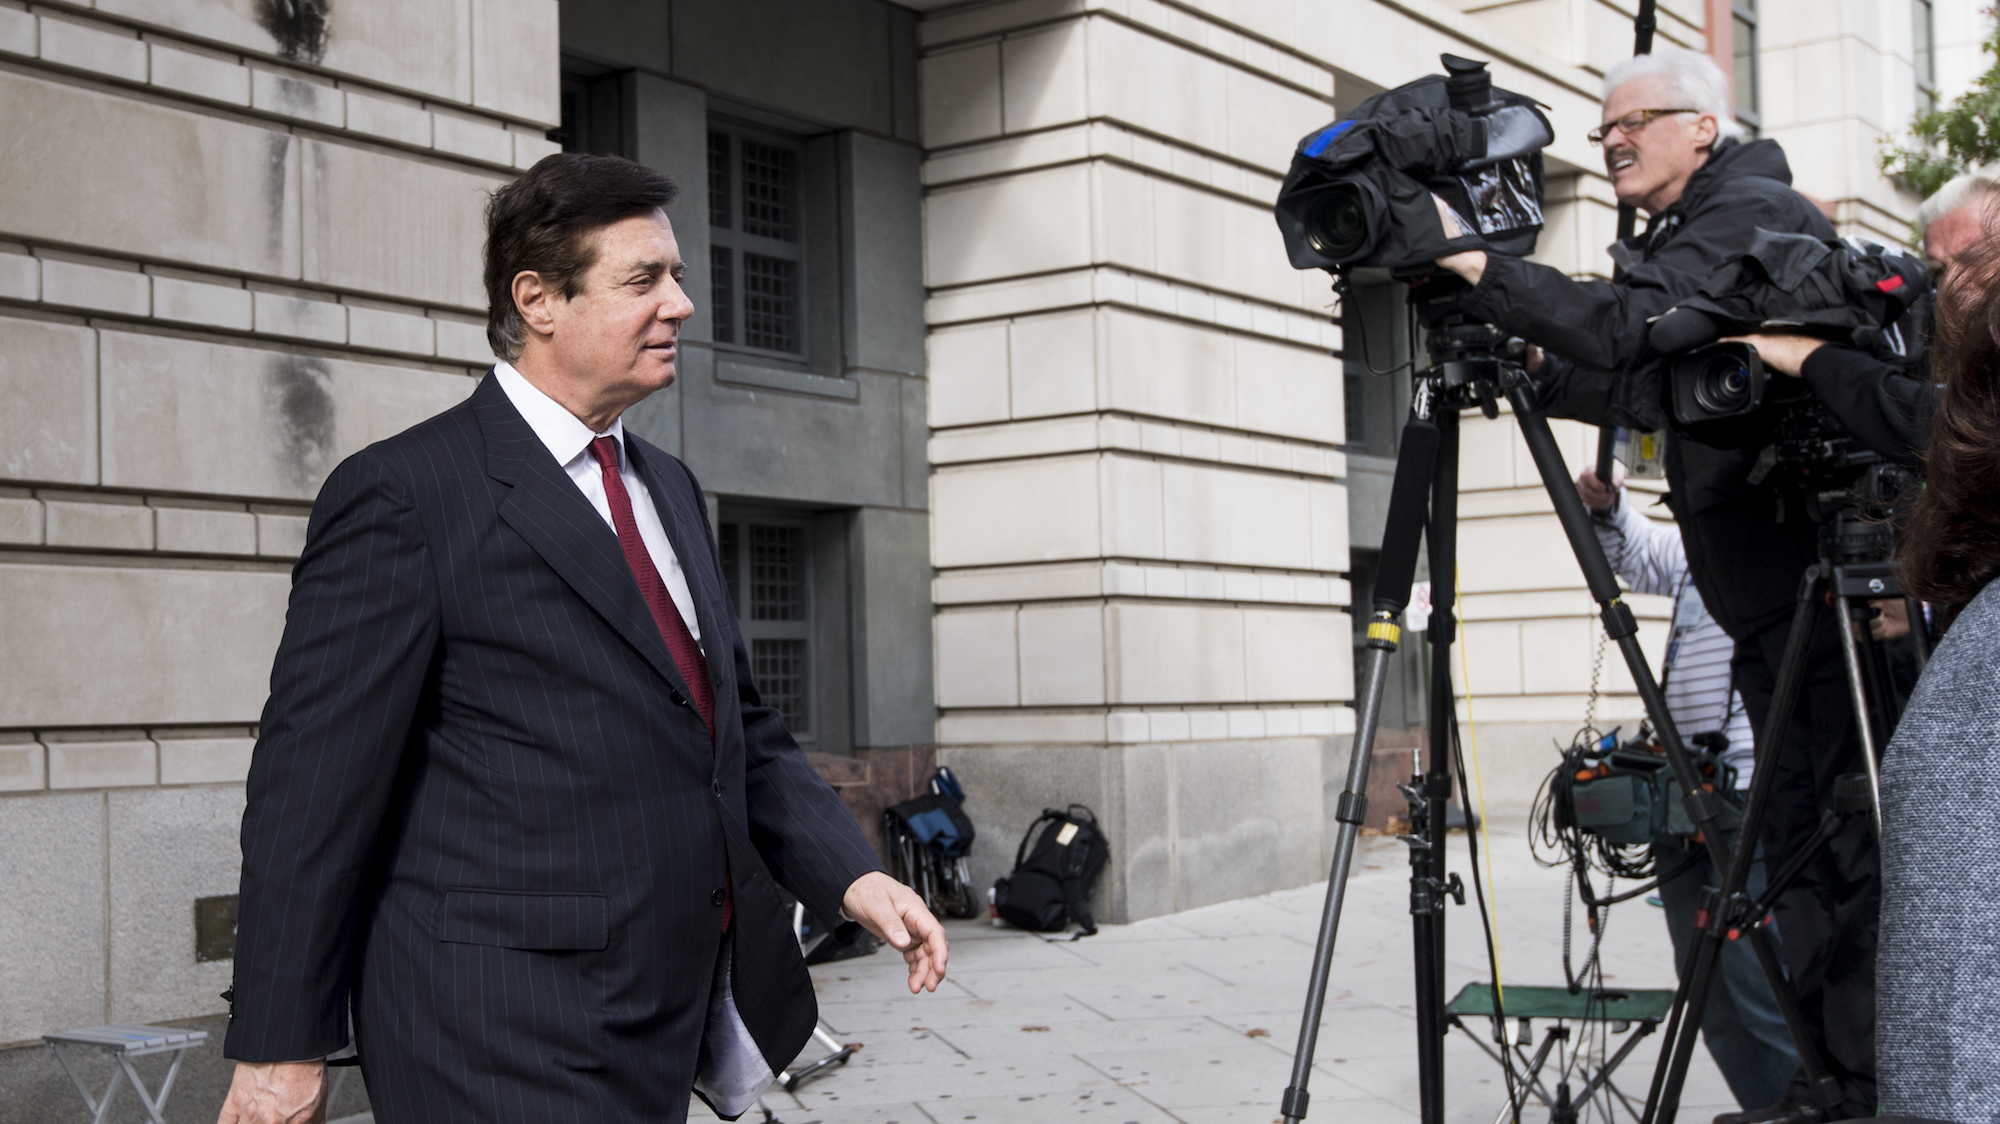 Former Donald Trump Campaign Guru Paul Manafort Headed To Hoosegow